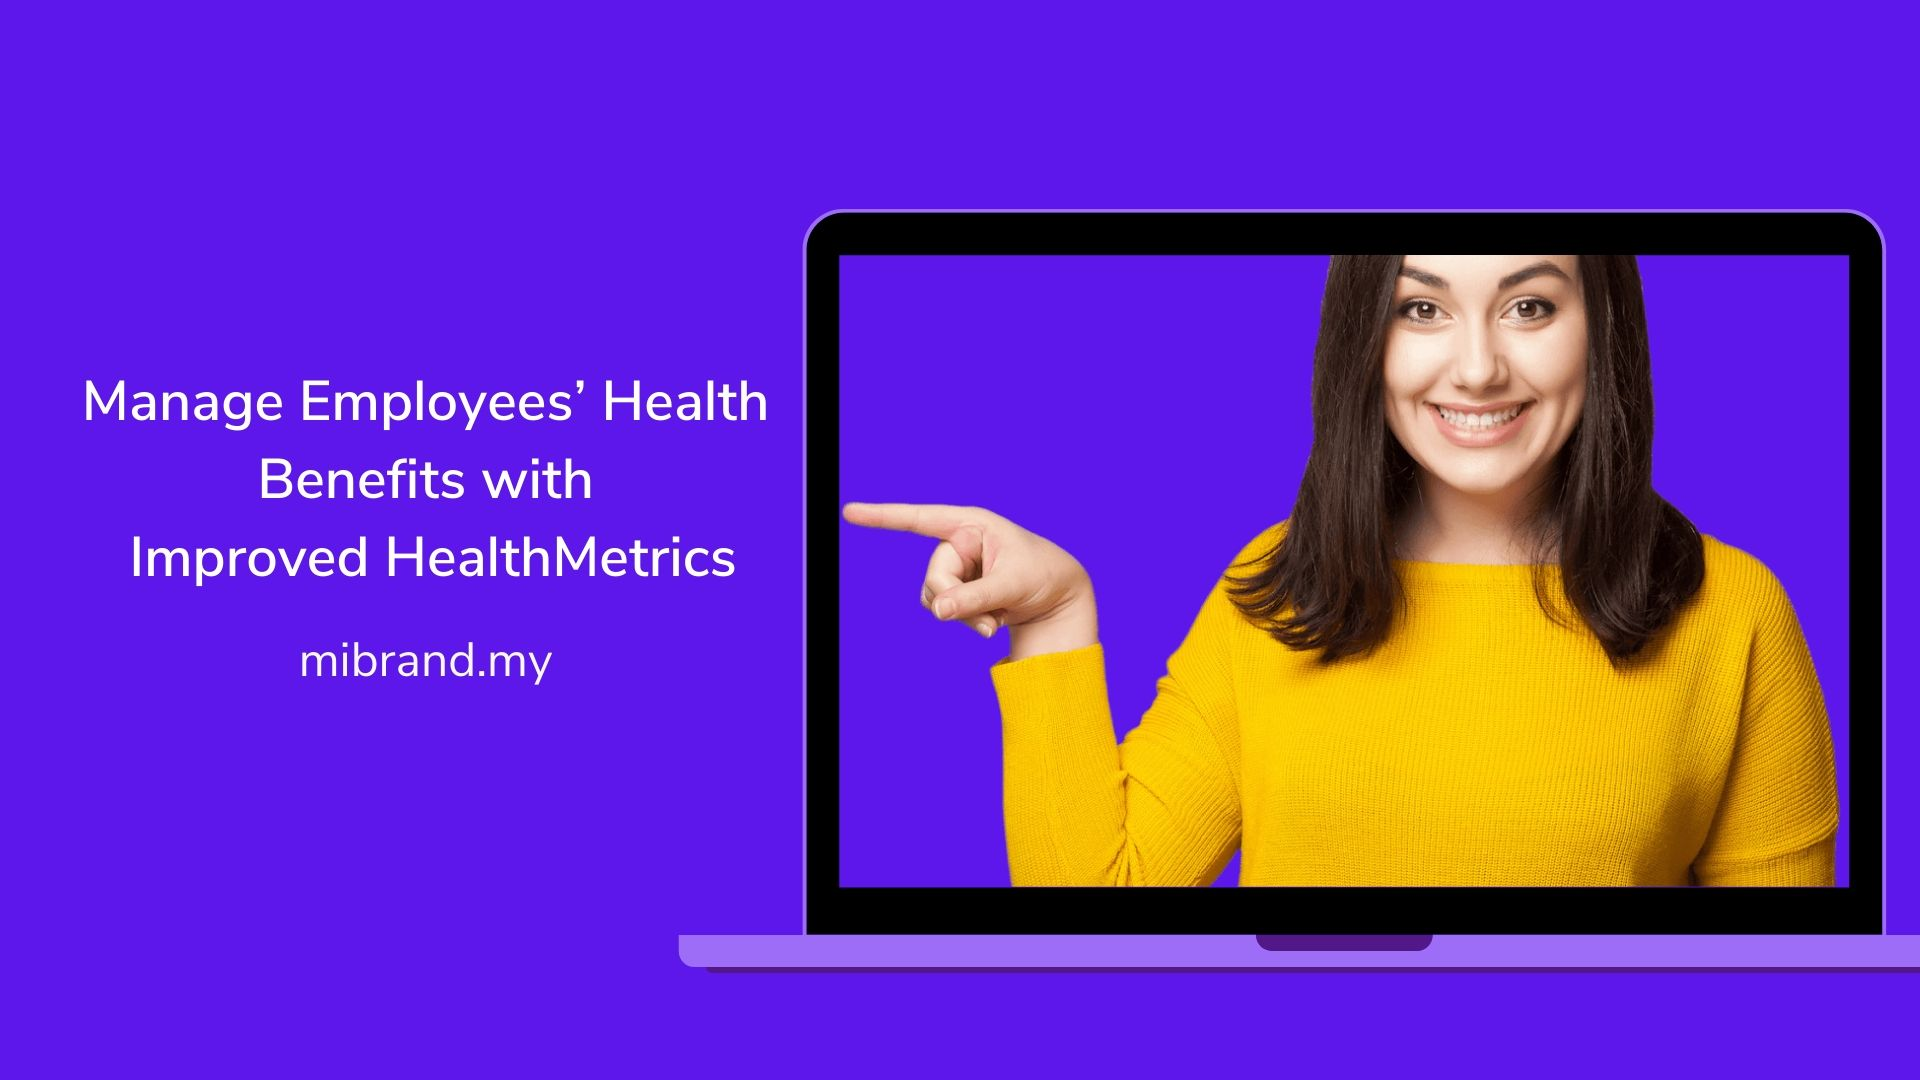 Employees' Health Benefits, Manage Employees' Health Benefits With Improved HealthMetrics